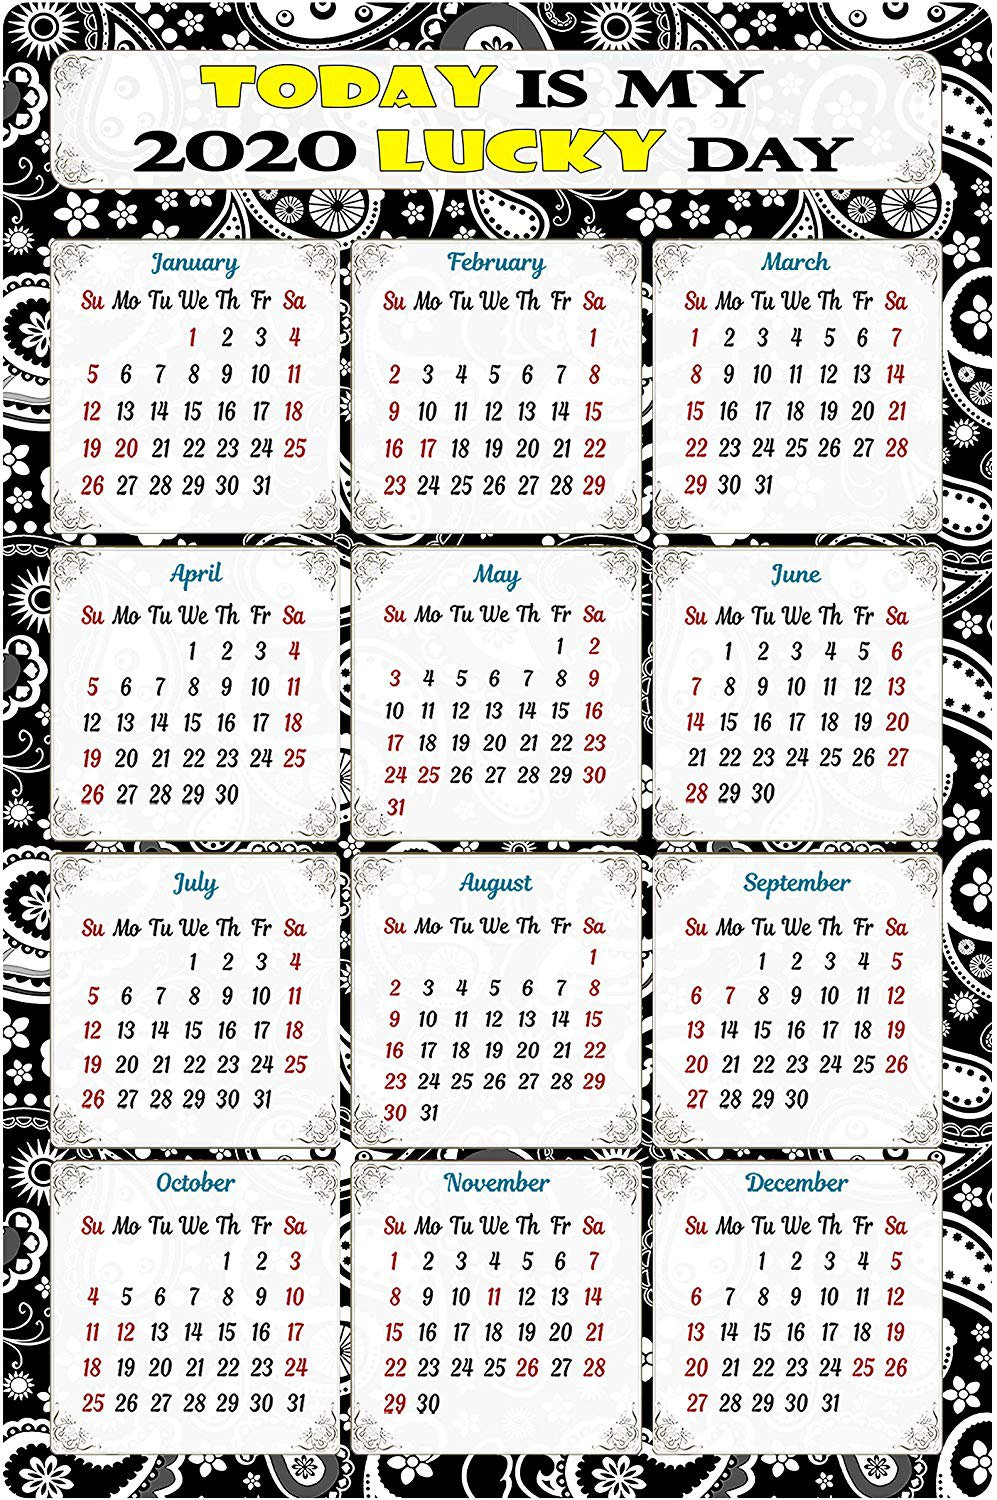 2020 Magnetic Calendar - Calendar Magnets - Today is My Lucky Day - Edition #TN011